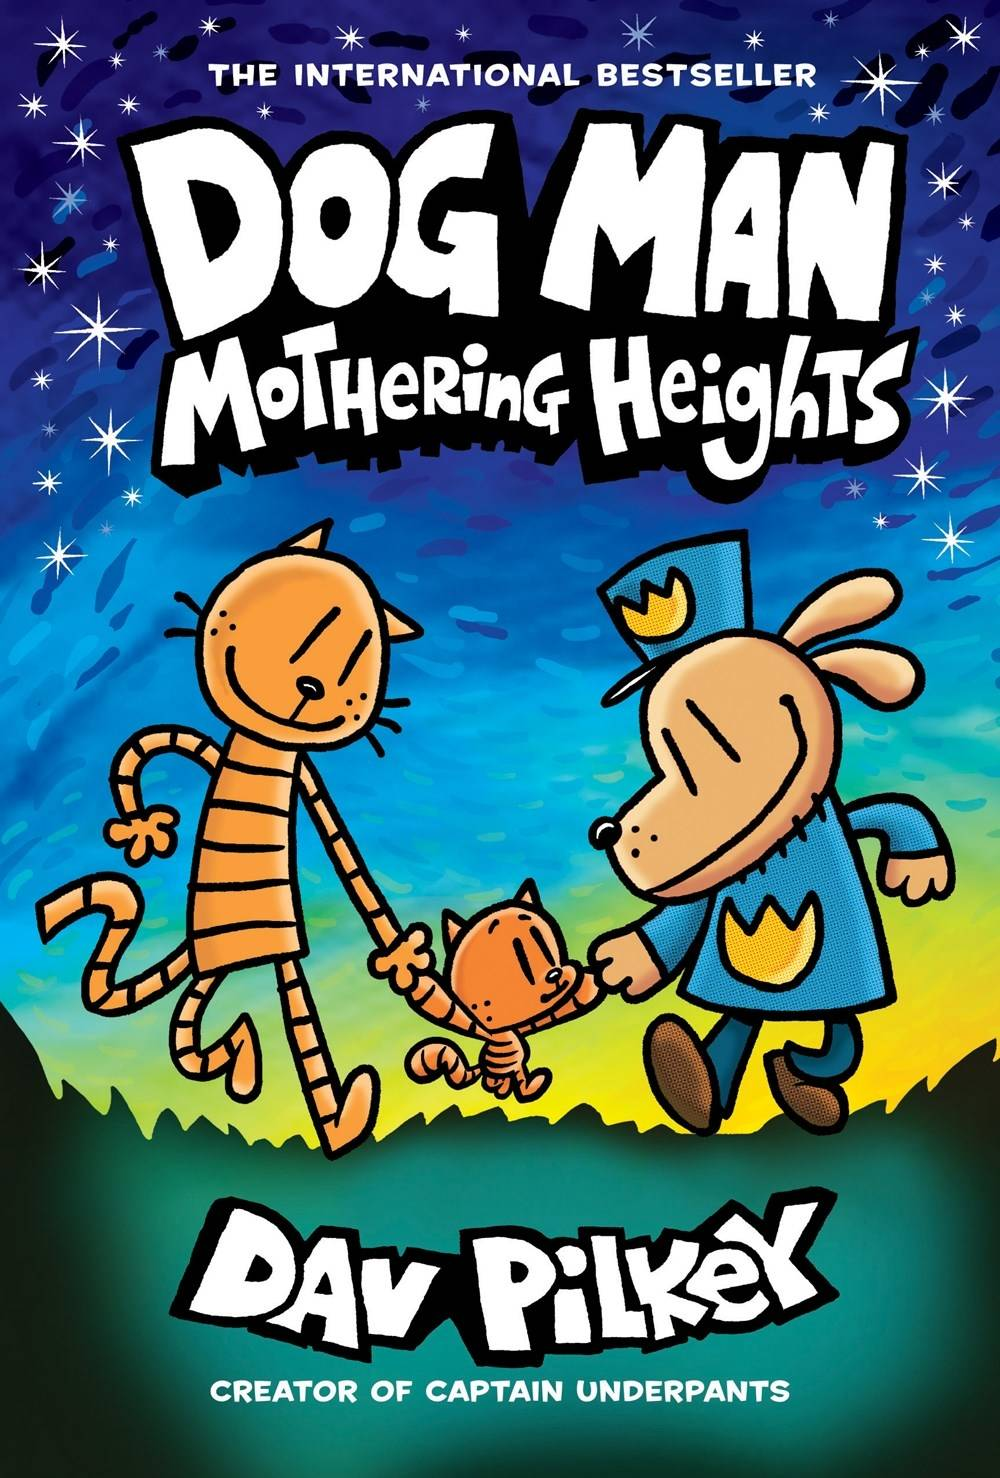 DOG MAN HC GN W DUST JACKET VOL 10 MOTHERING HEIGHTS